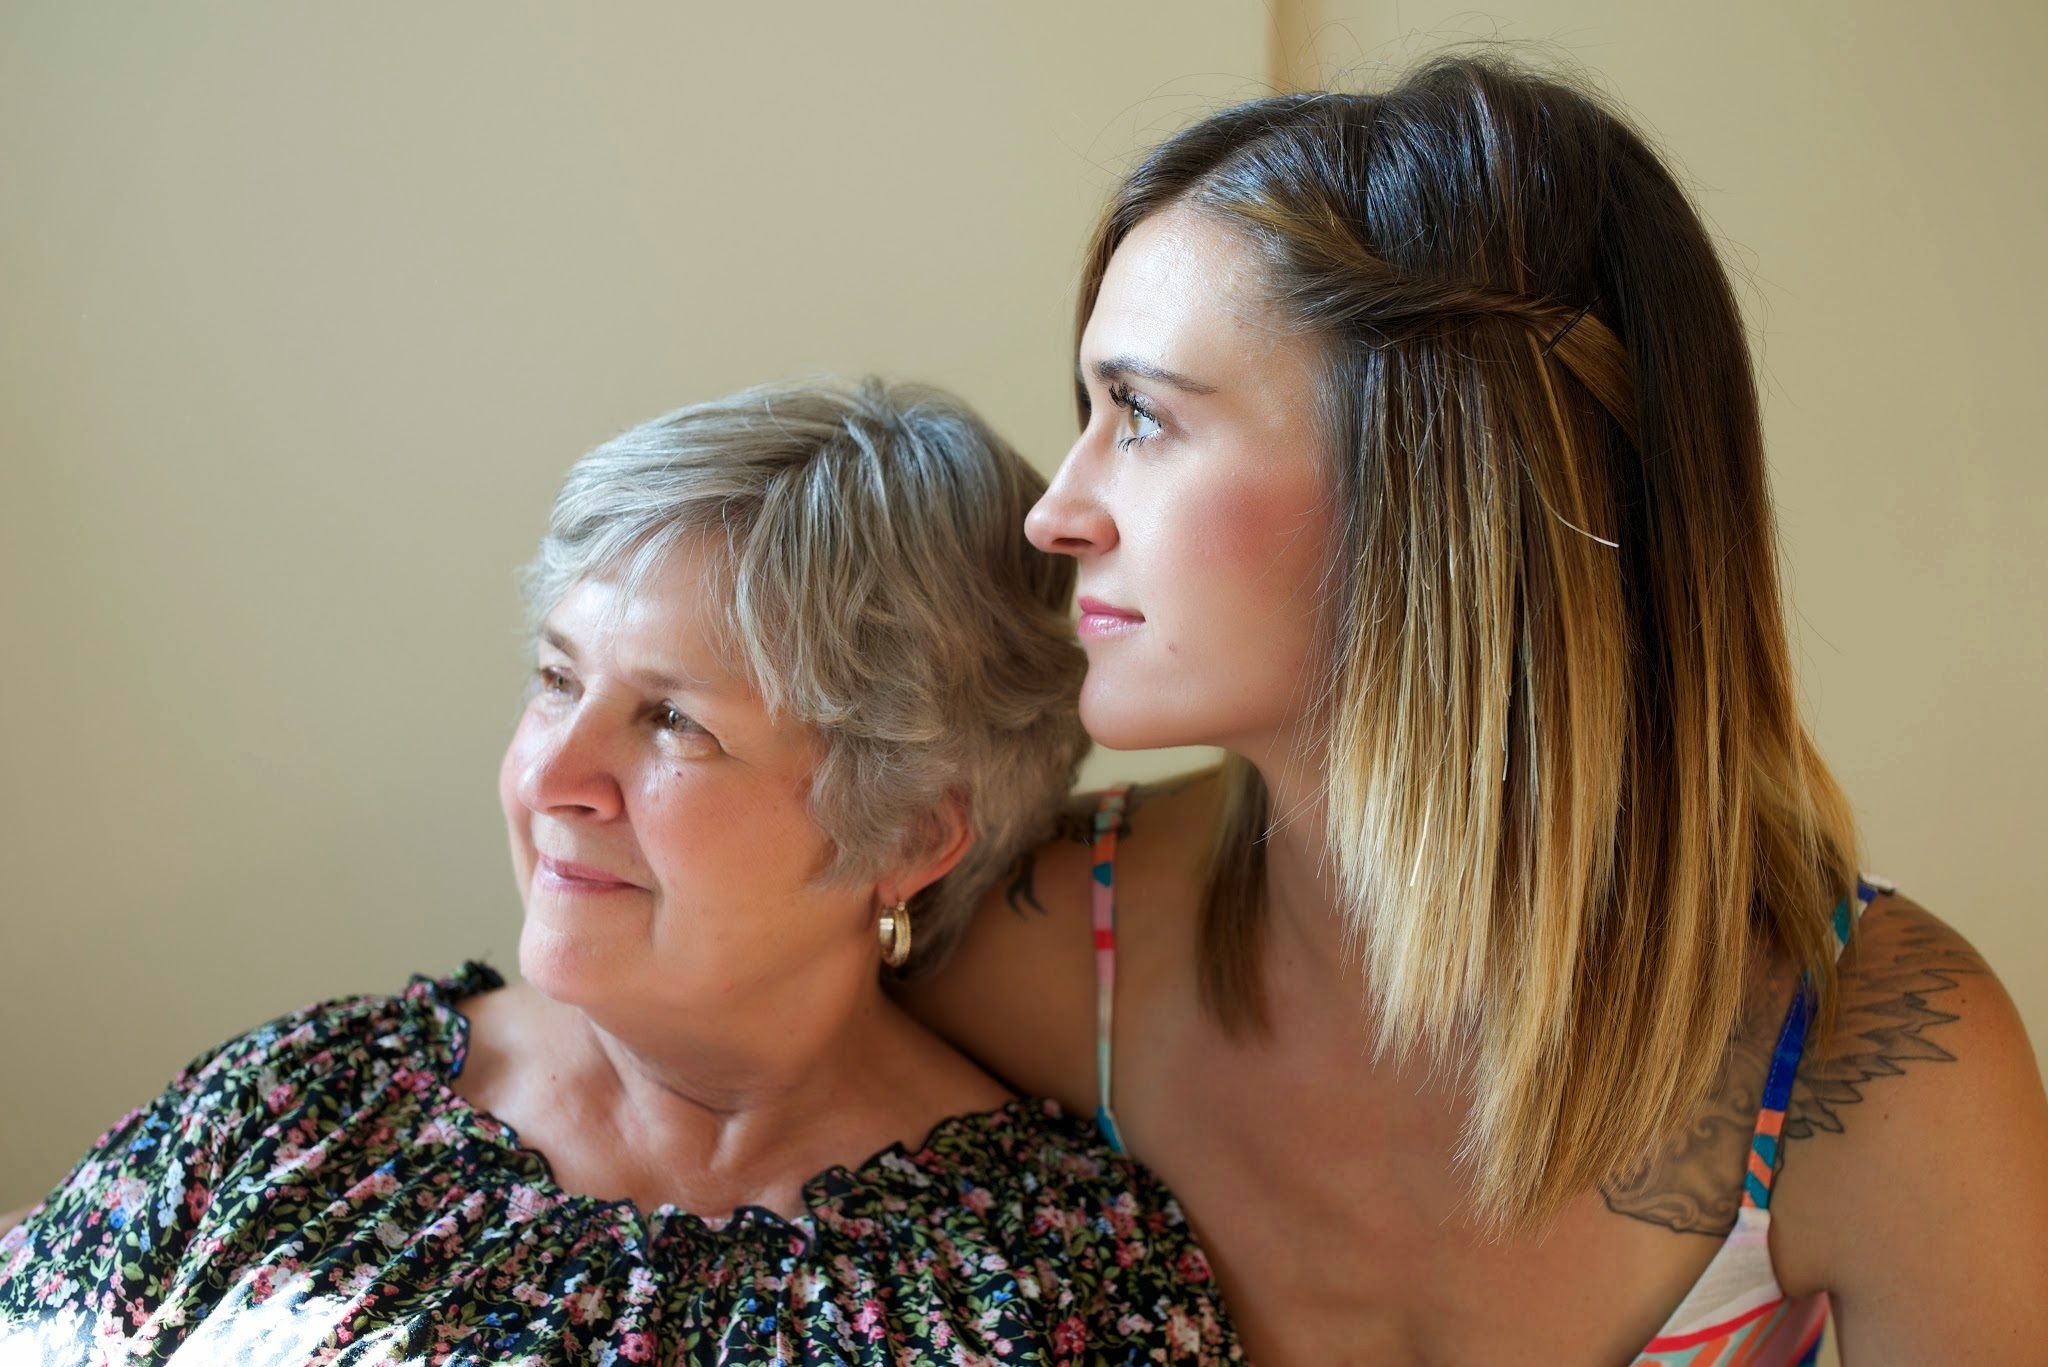 Does Hypothyroidism Run In The Family?